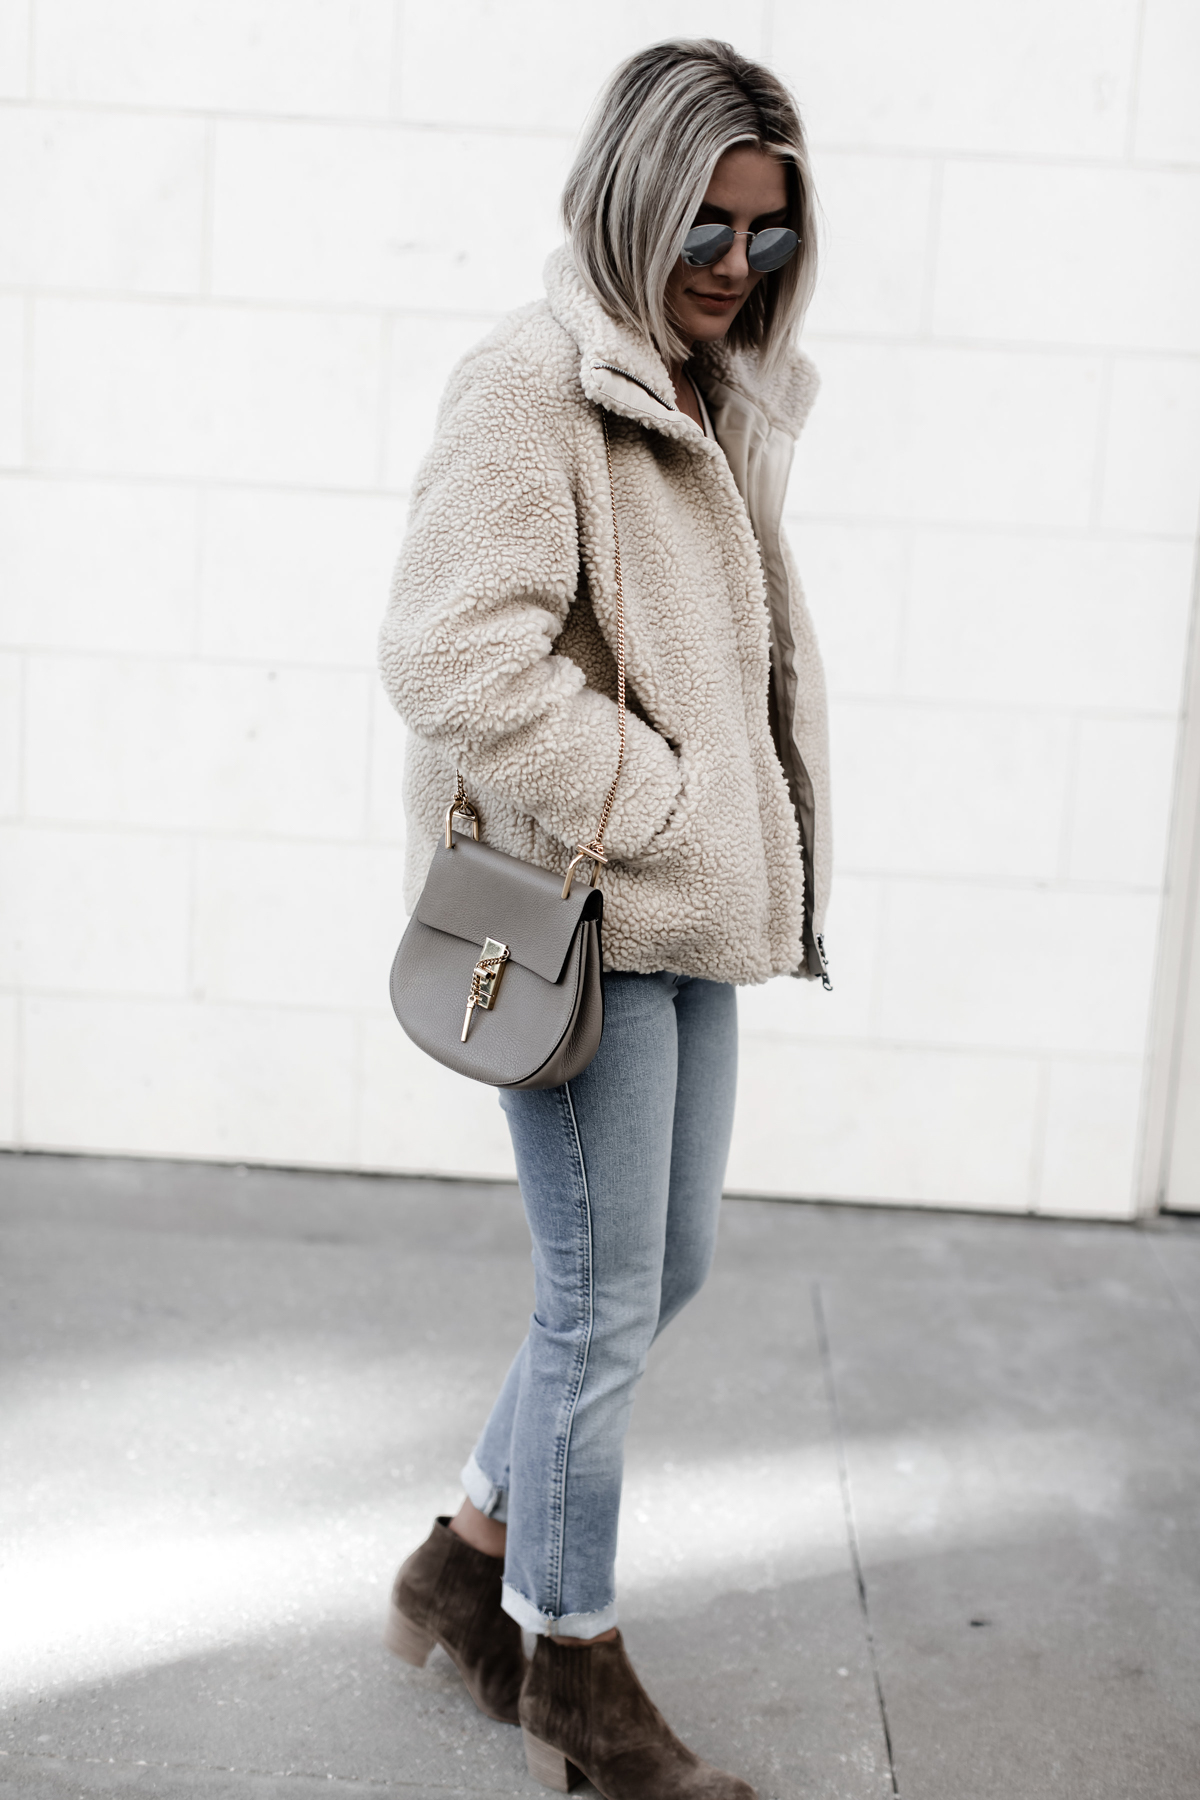 cute jeans and pile jacket outfit